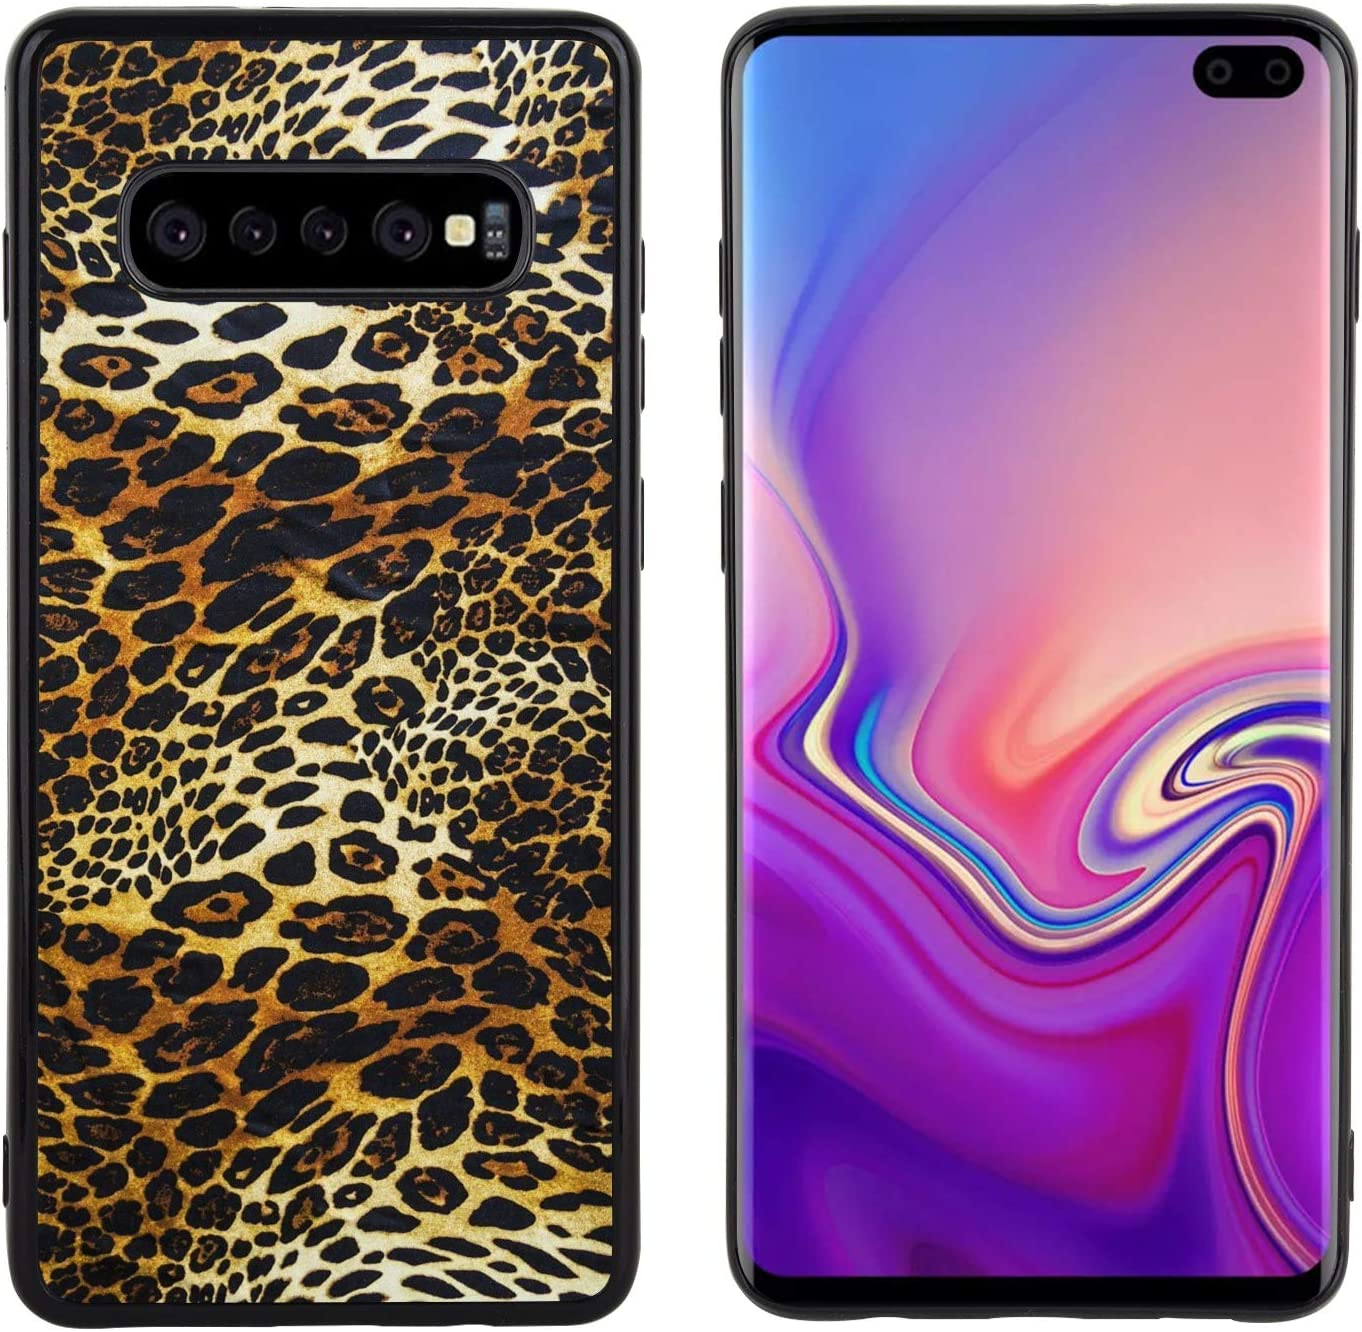 Samsung Galaxy S10 Leopard Print Wallpaper Phone Case Black Back Side Soft Tpu Protective Cover Amazon Co Uk Electronics